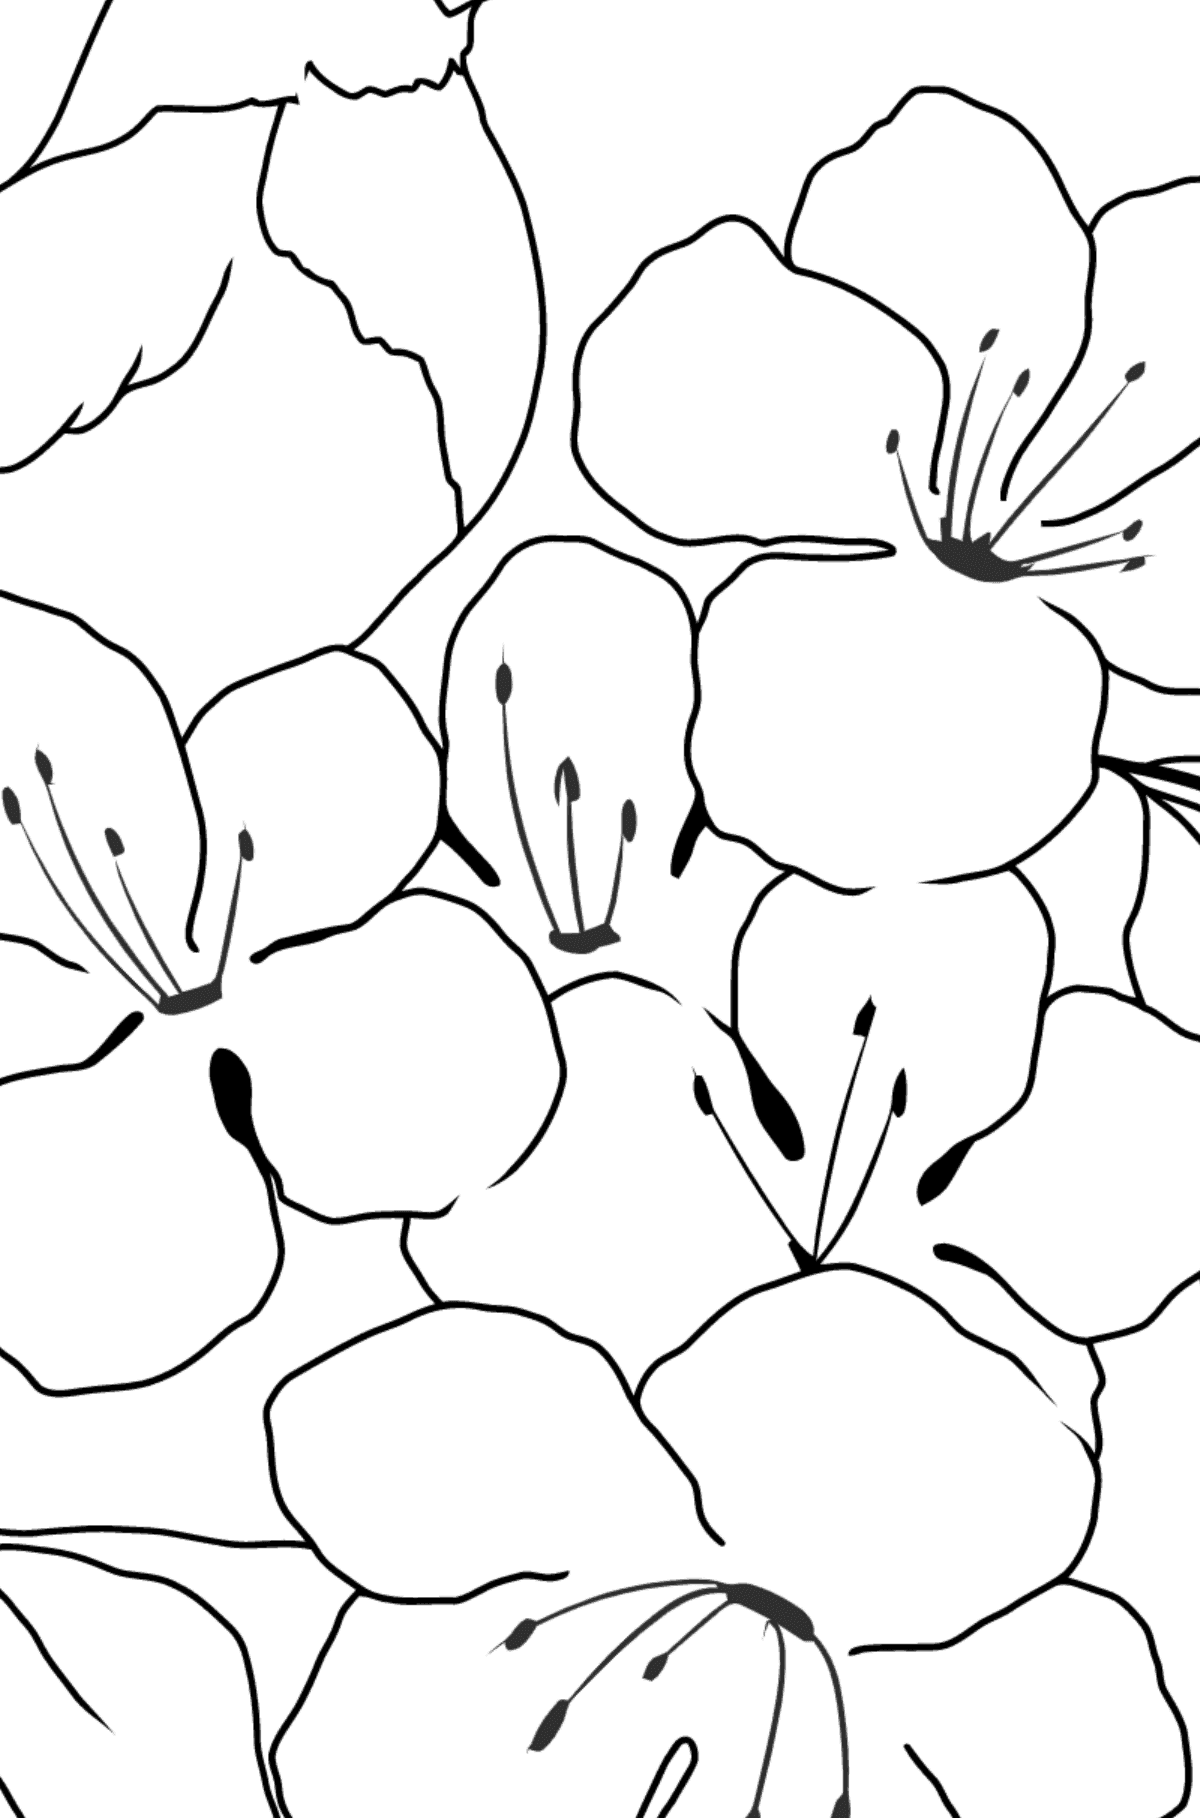 Summer Coloring Page - A Bird is Chirping on a Branch with Flowers for Children  - Color by Number Addition